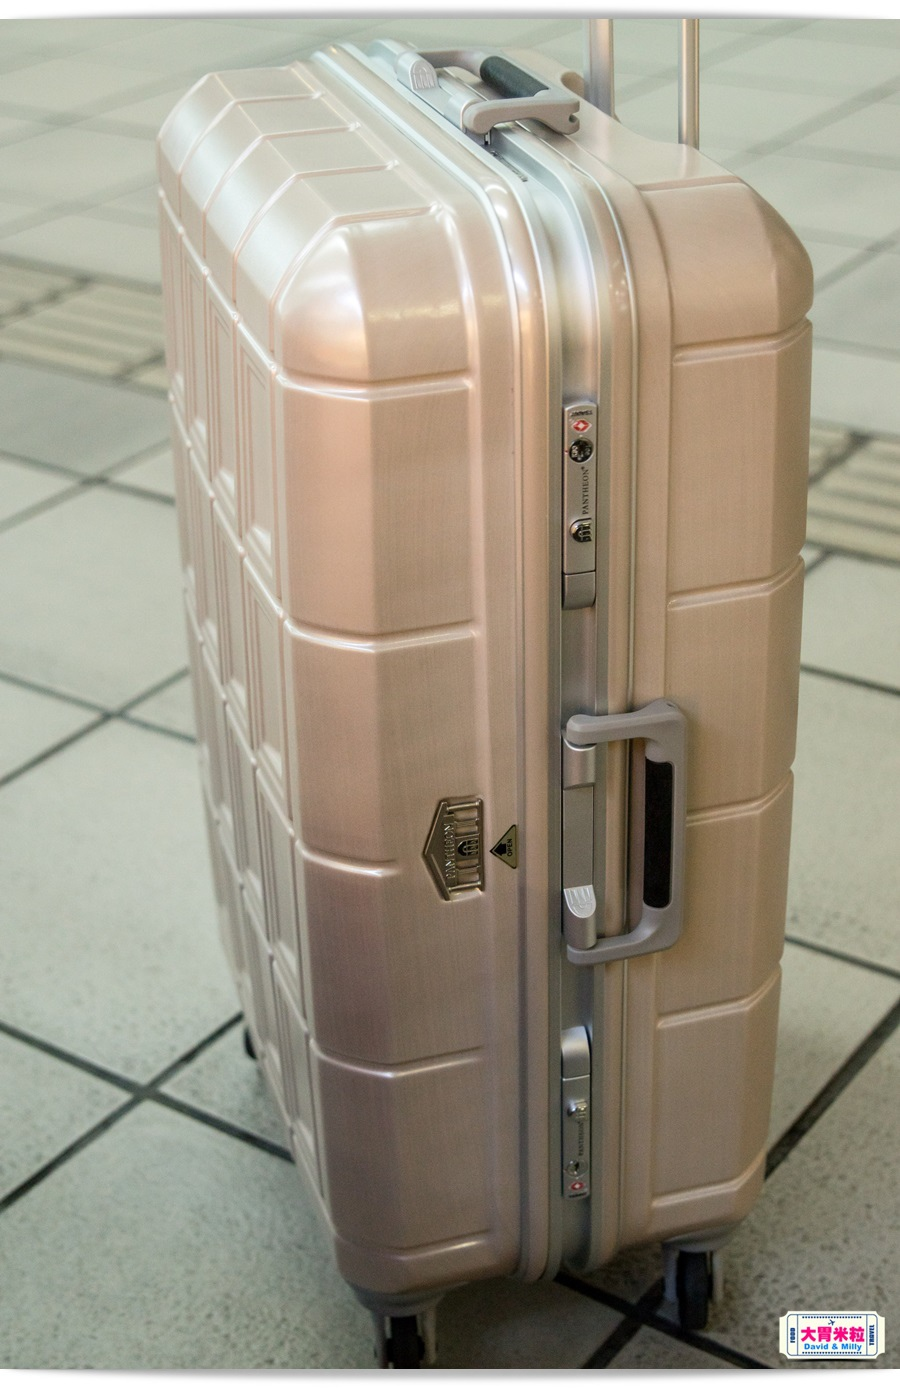 luggage_Davidmilly029.jpg